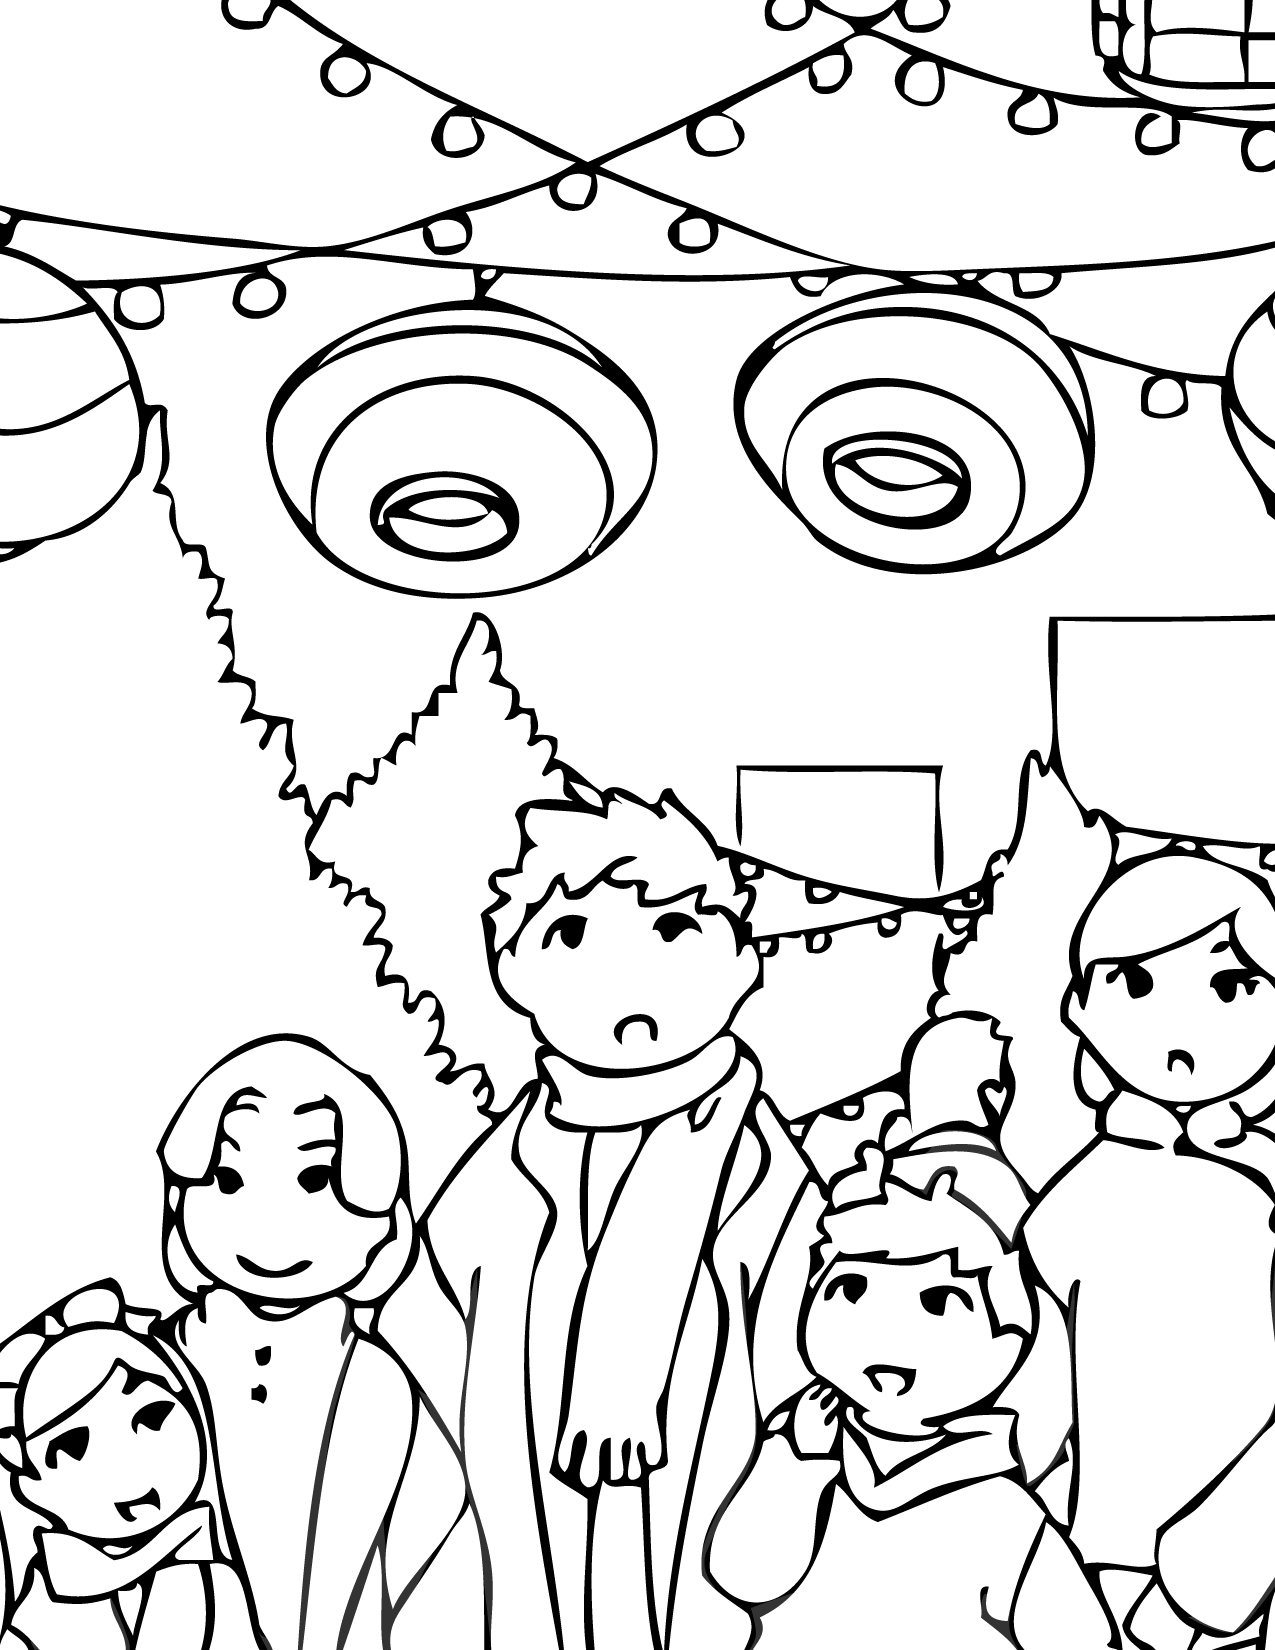 Lantern coloring page az coloring pages for Lantern coloring page